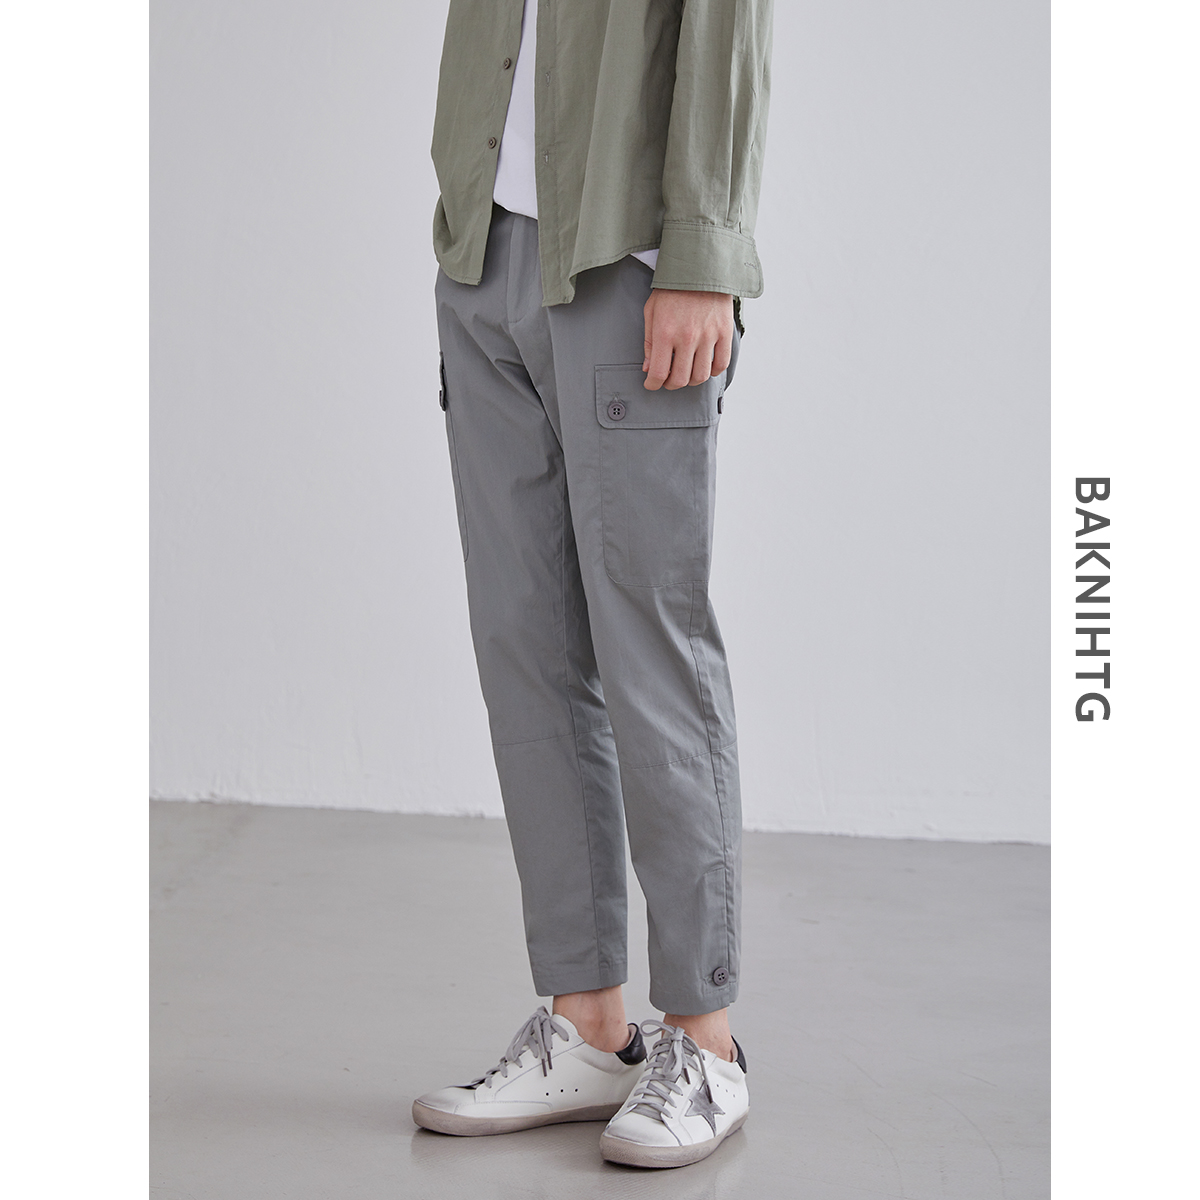 [non refundable after closing the store] new light industrial wear style button design casual Capris in summer